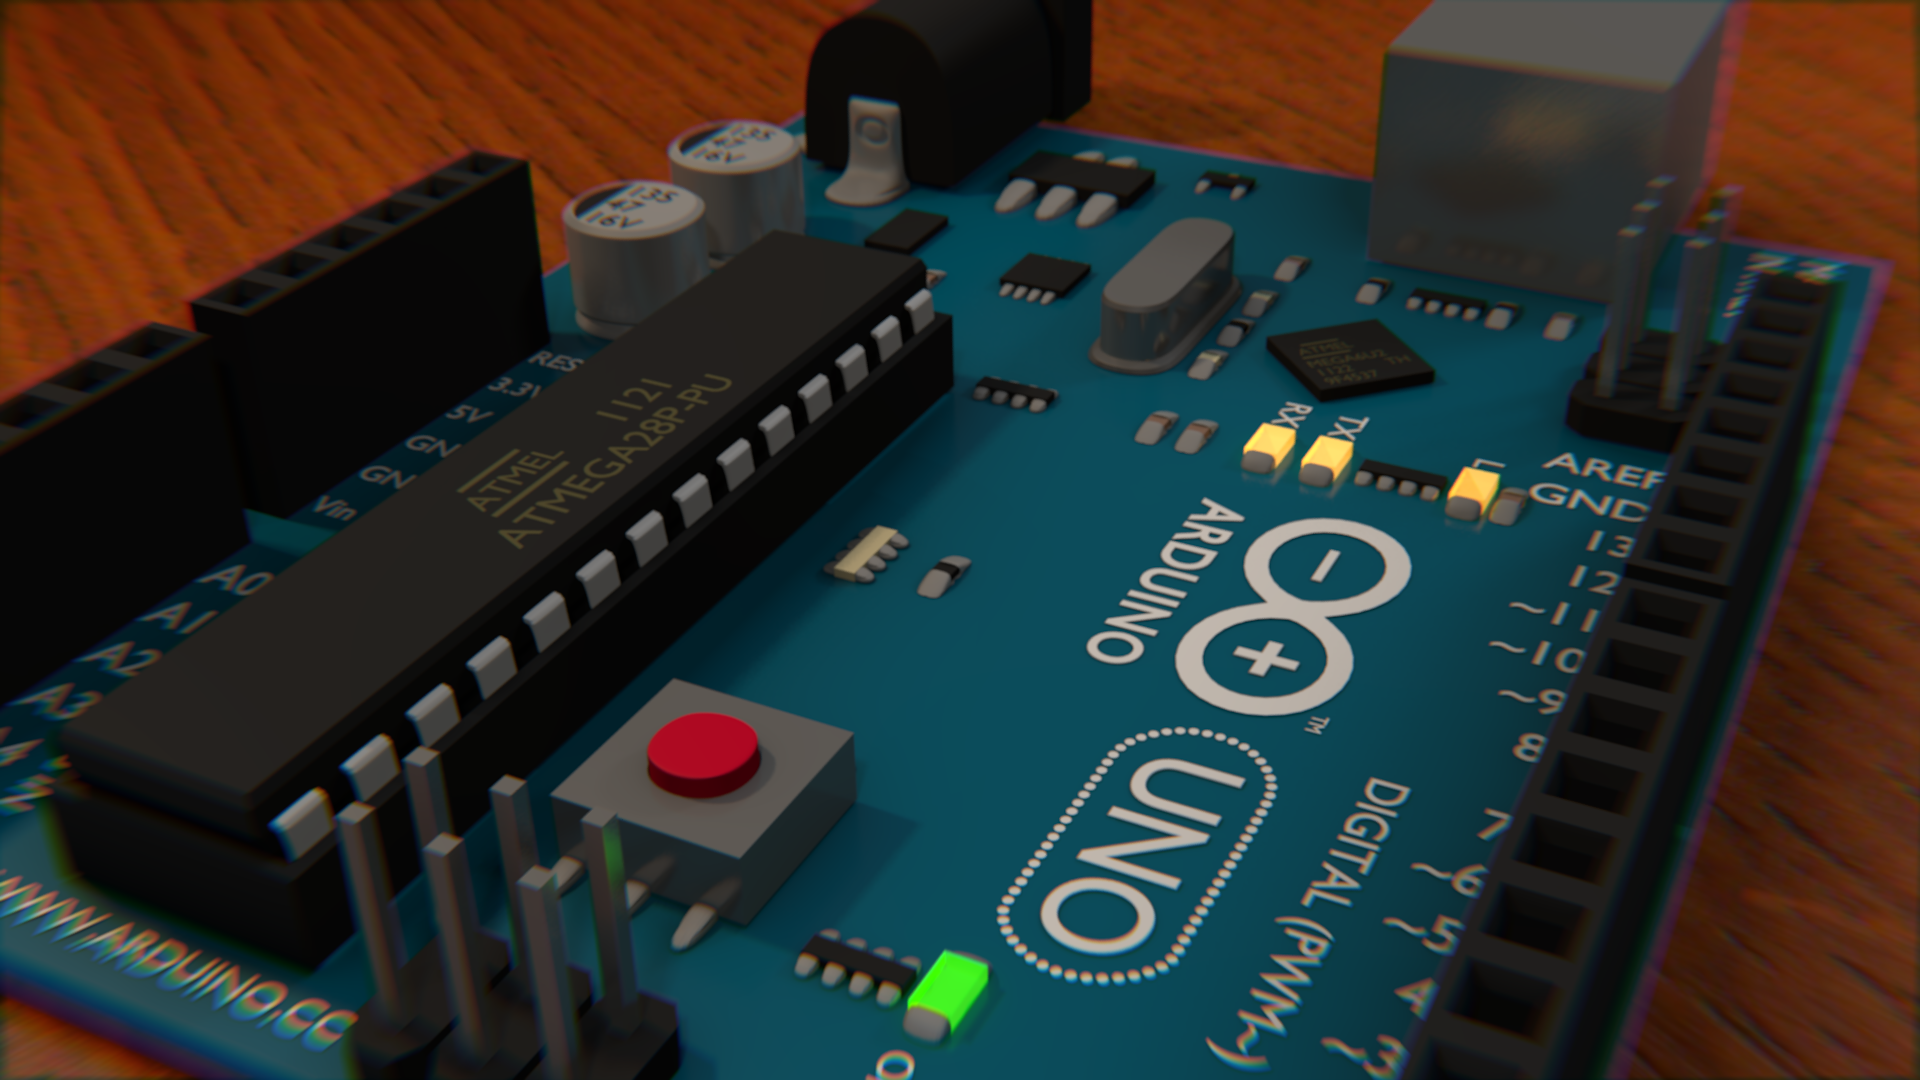 Another angle of the finished Arduino Uno in Blender